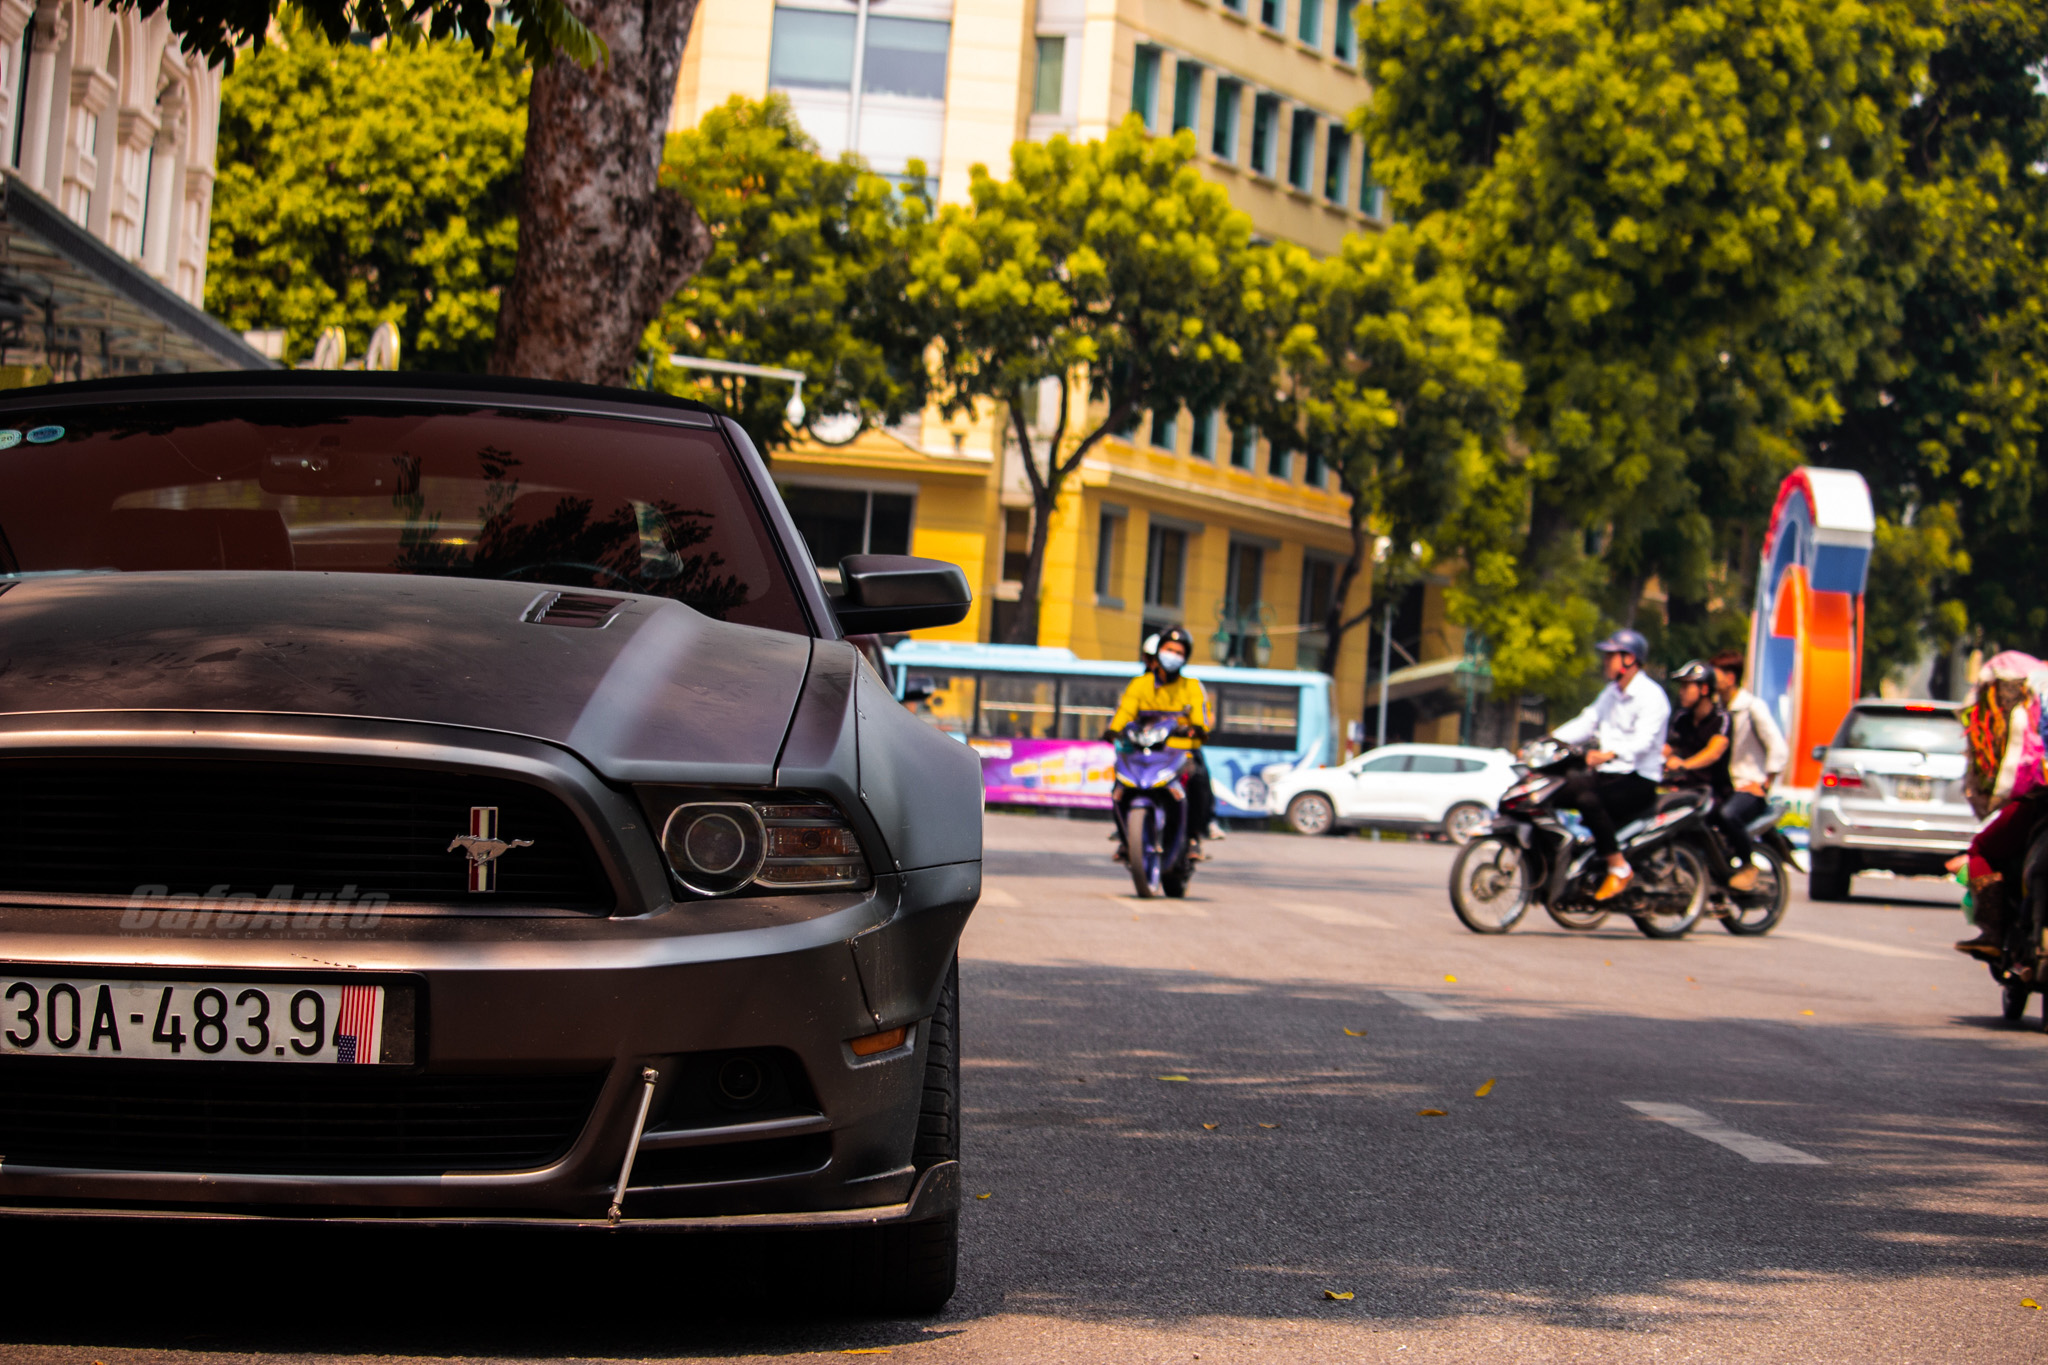 mustangGT-cafeautovn-12